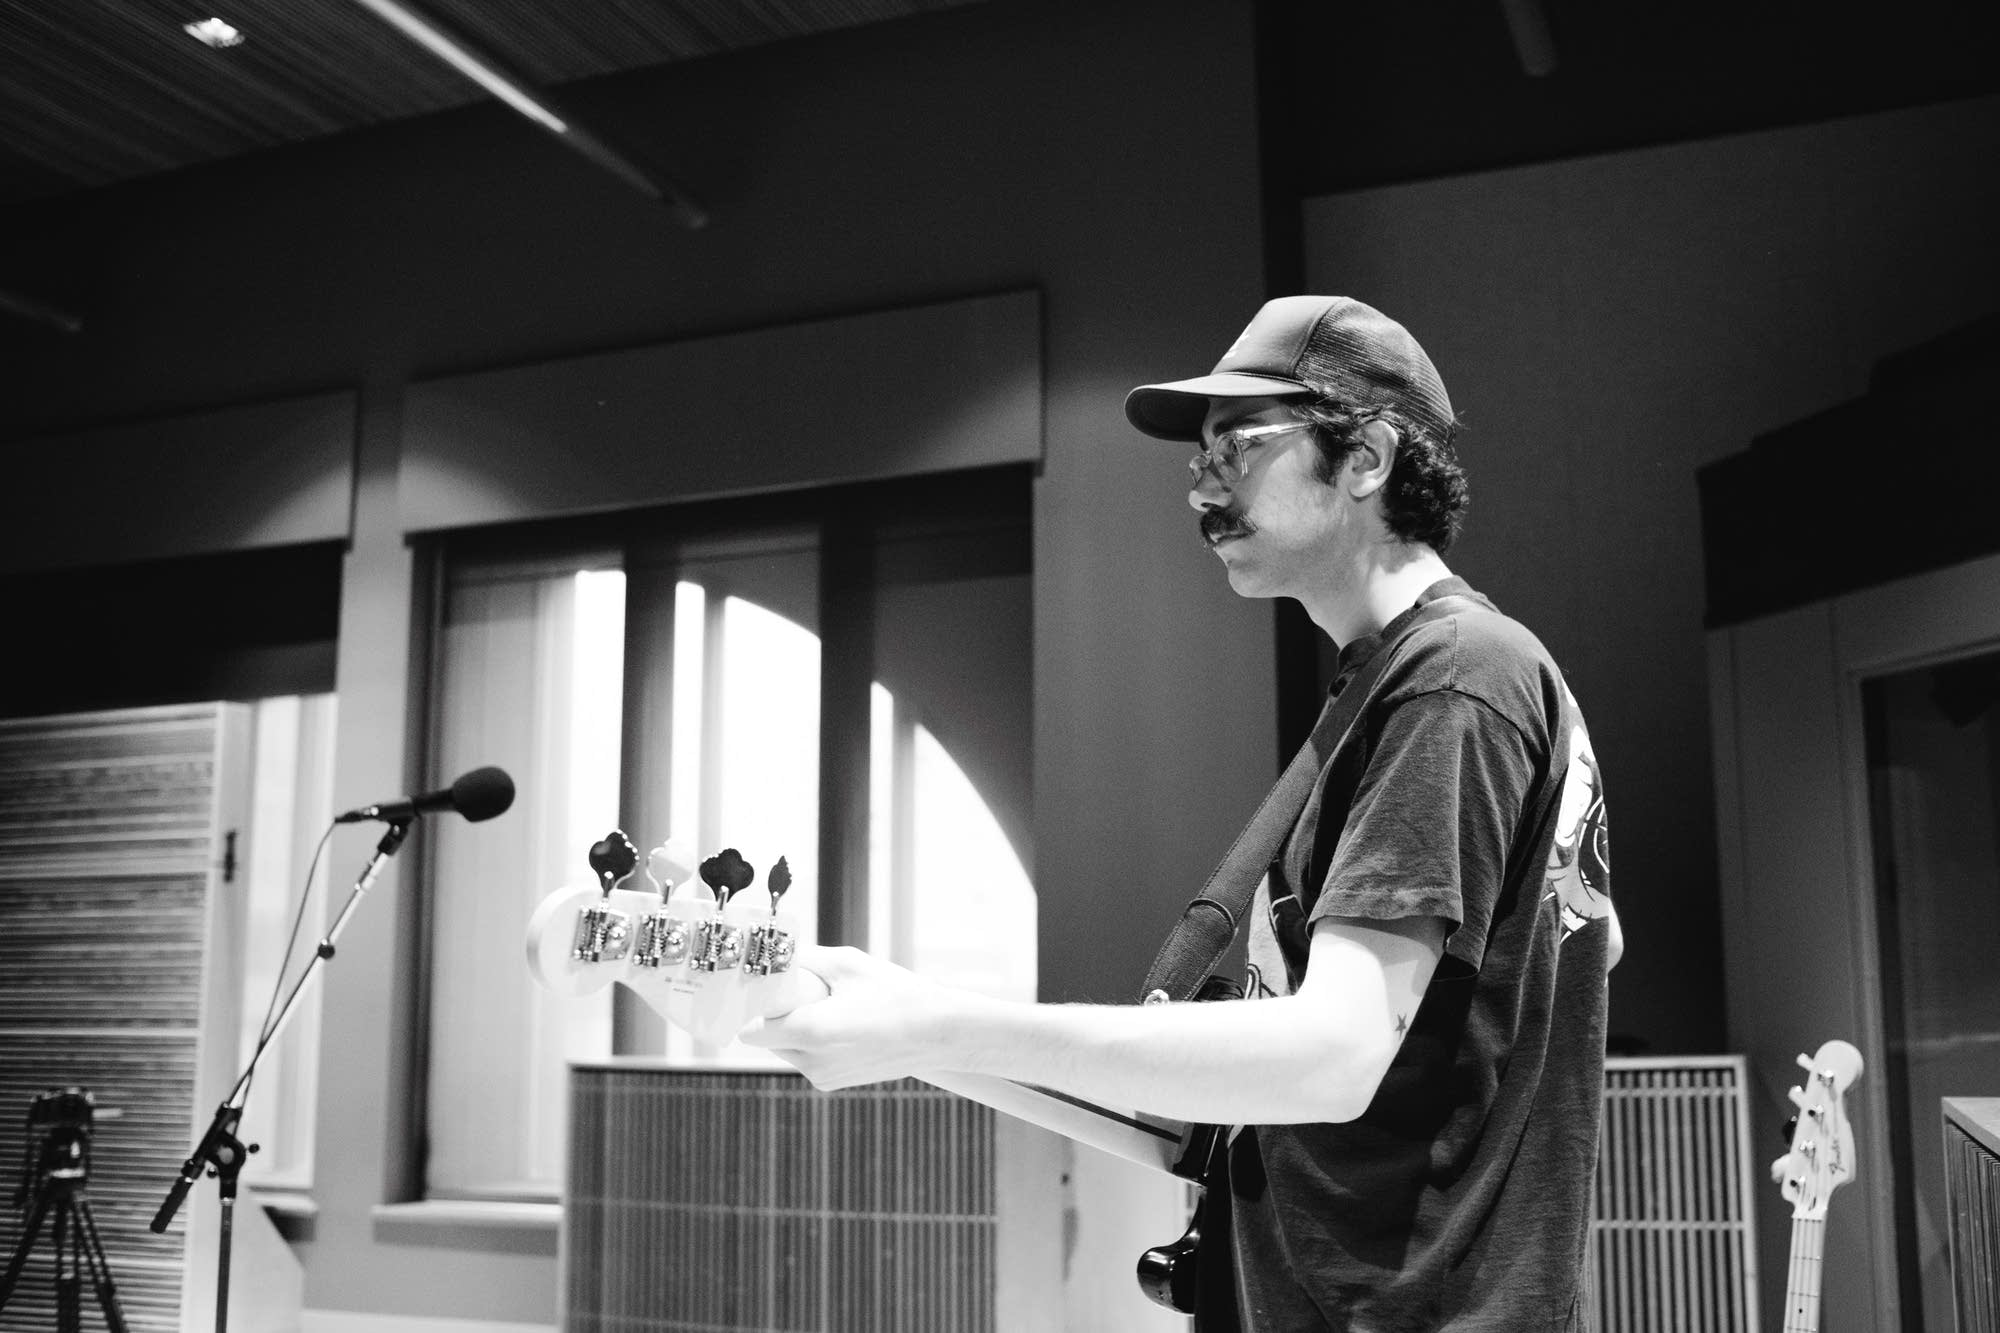 Remo Drive perform in The Current studio